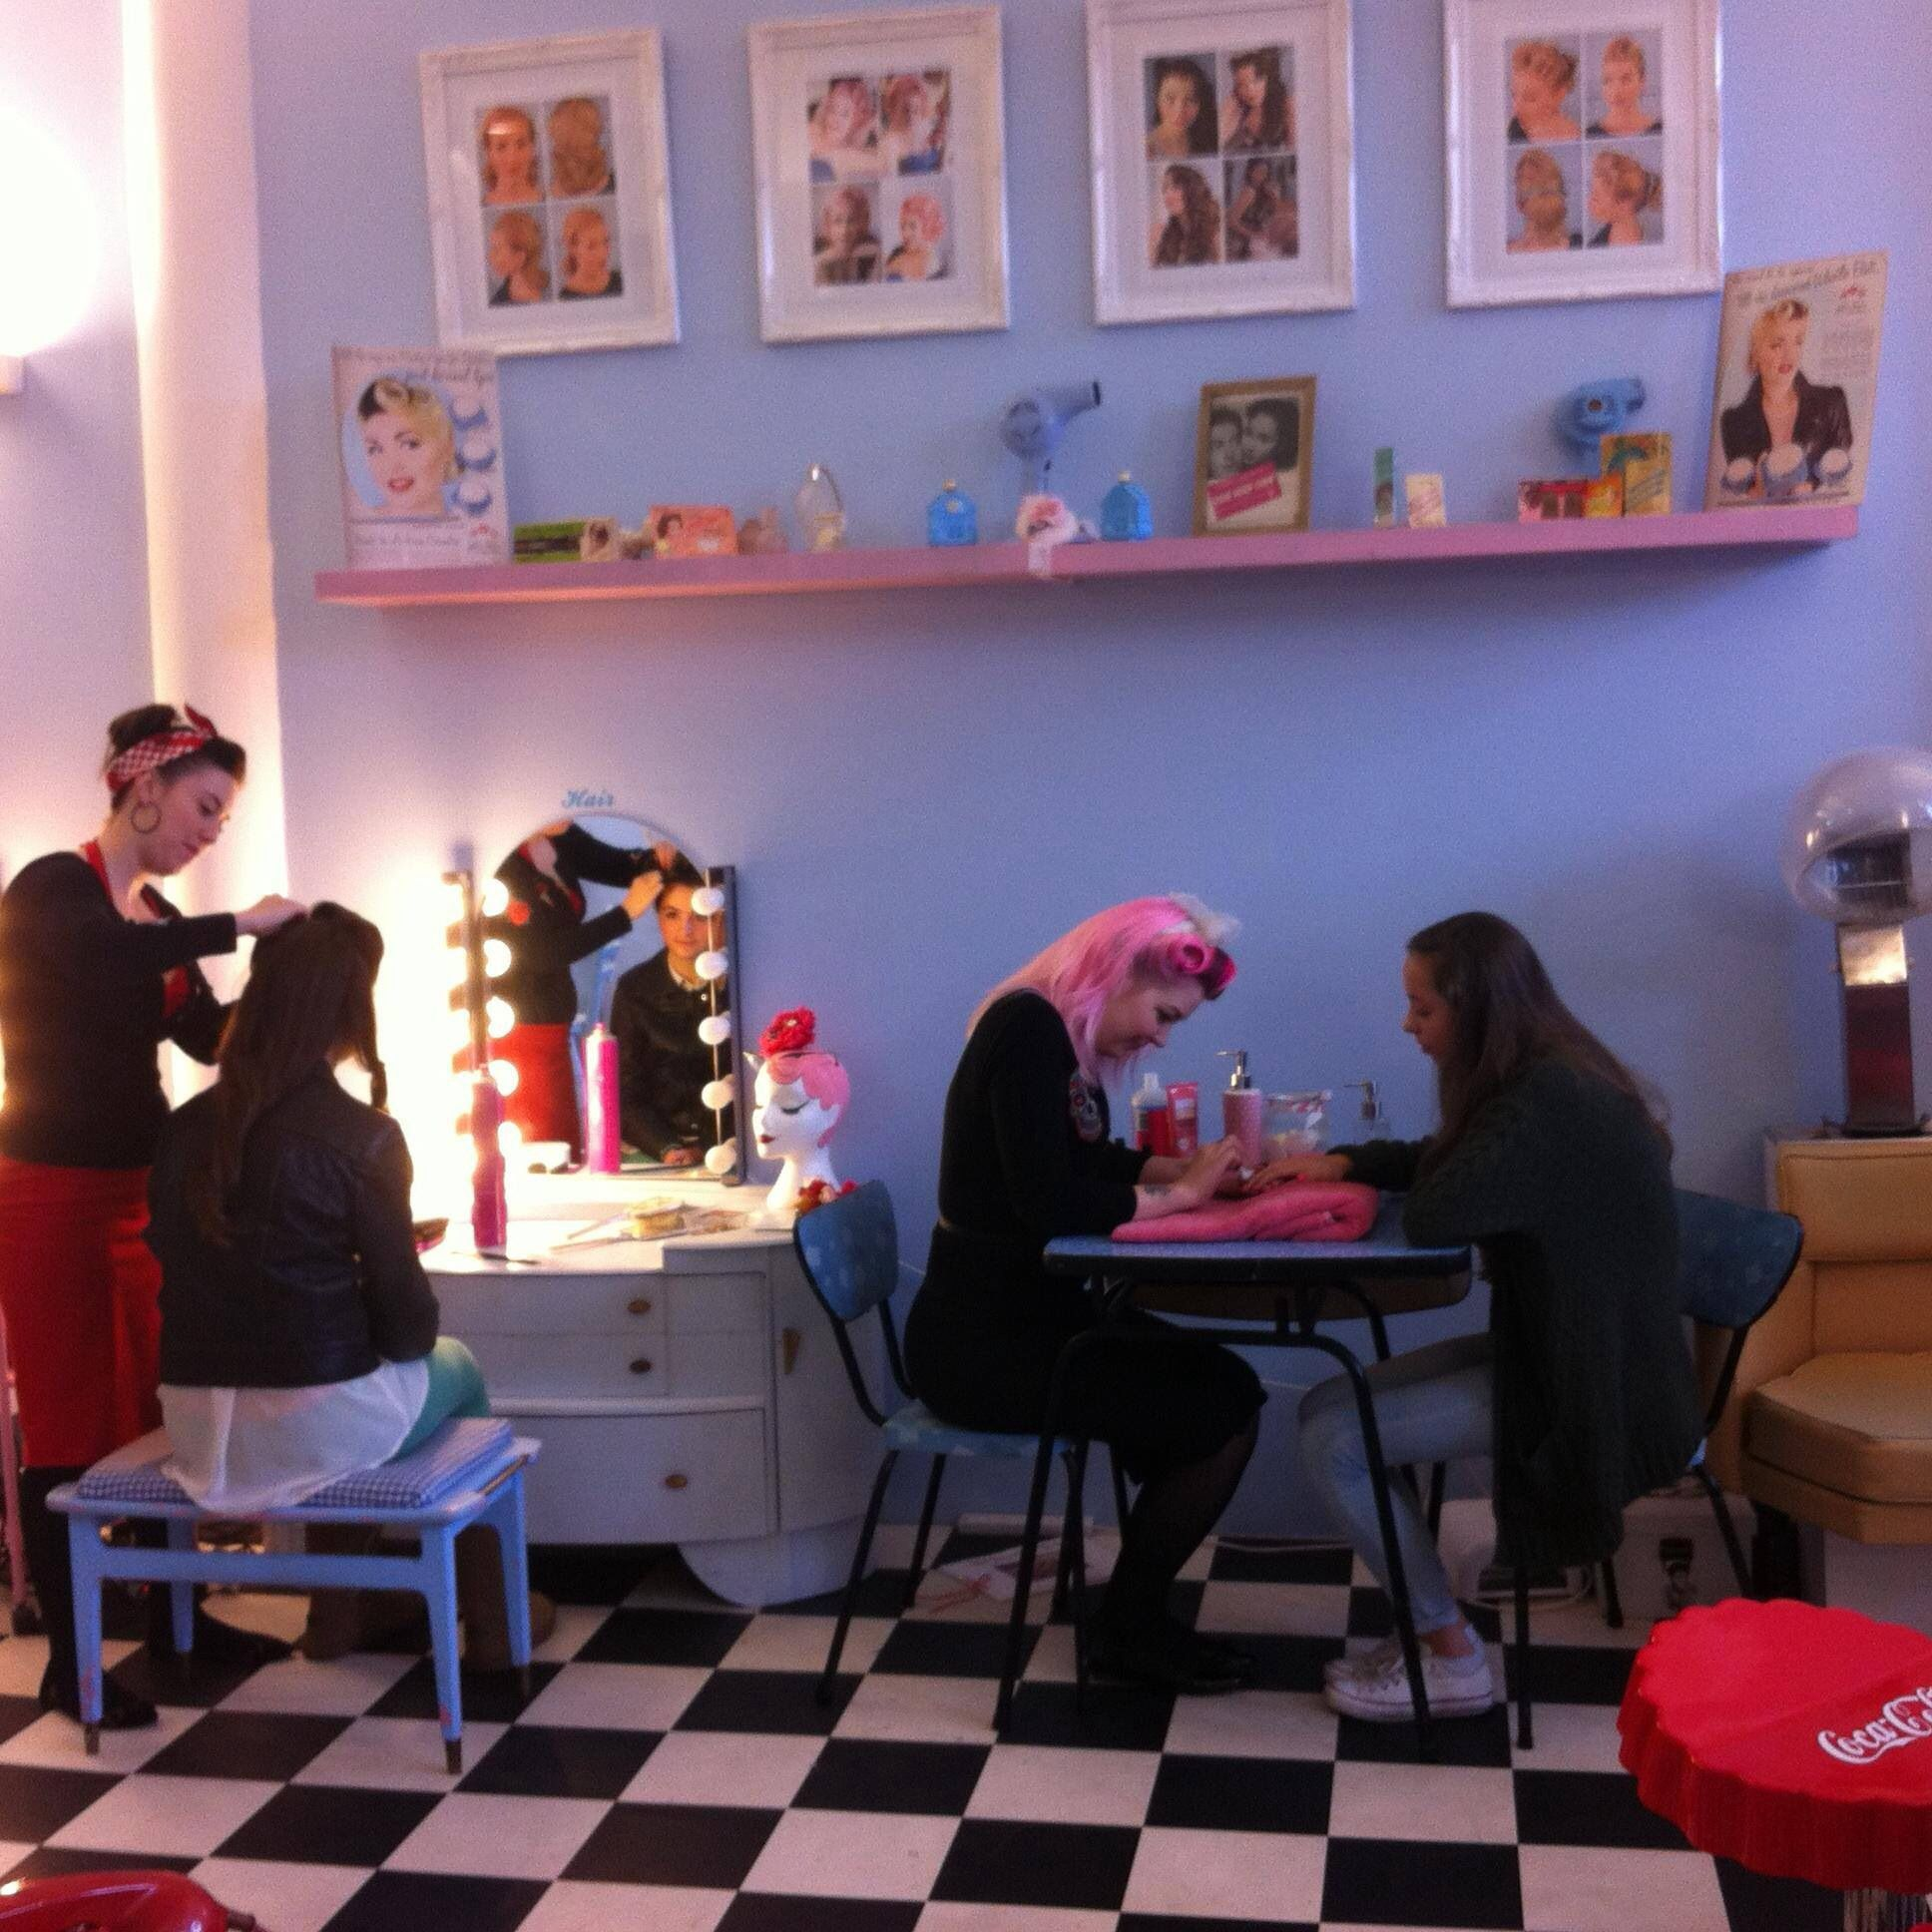 Retro Salon  Retro salon, Hair and beauty salon, Vintage hair salons